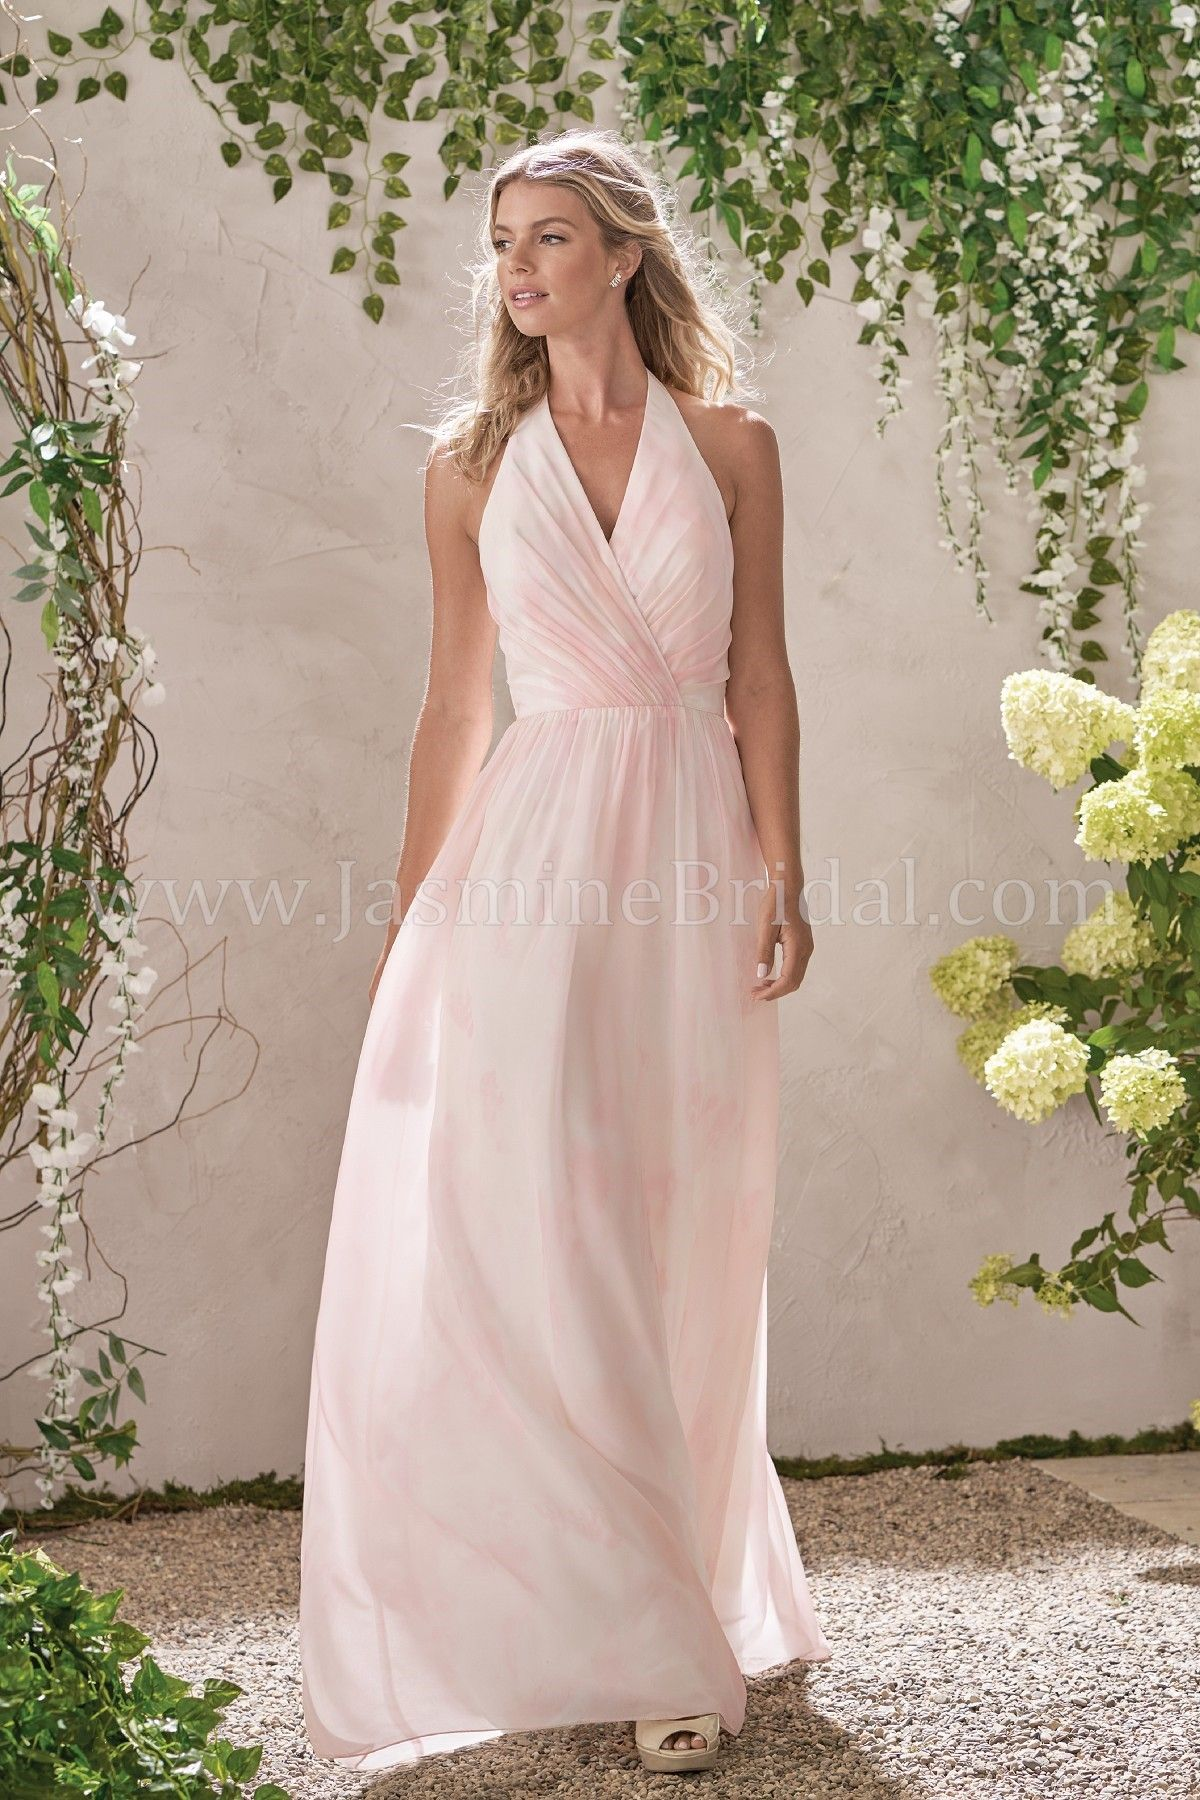 Jasmine Bridal B2 Style B193014 In Sunset Prints Color Sweet Pea